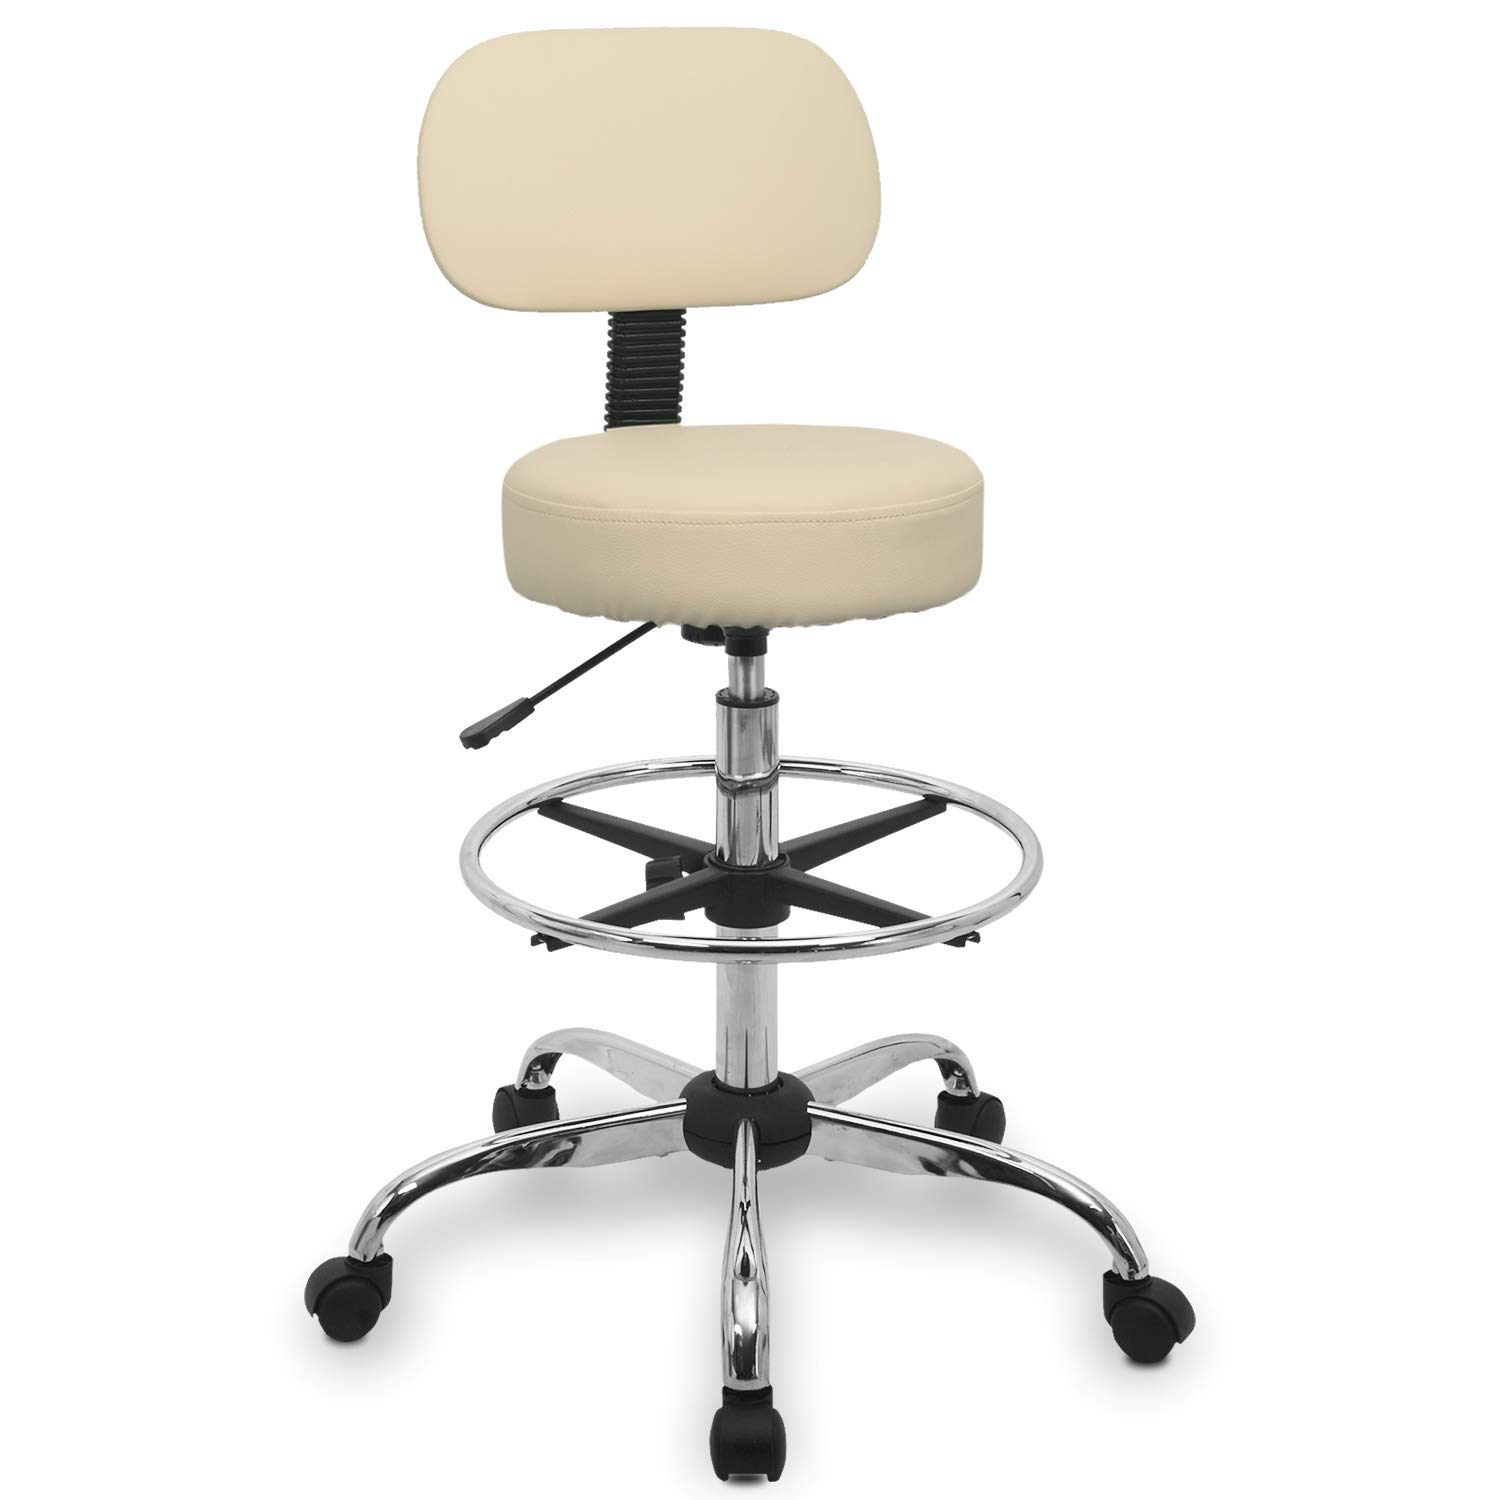 Urest Rolling Stool Chair Height Adjustable Swivel with Back Cushion, Foot Rest and Wheels, Drafting Stool Esthetician Stool, Beige